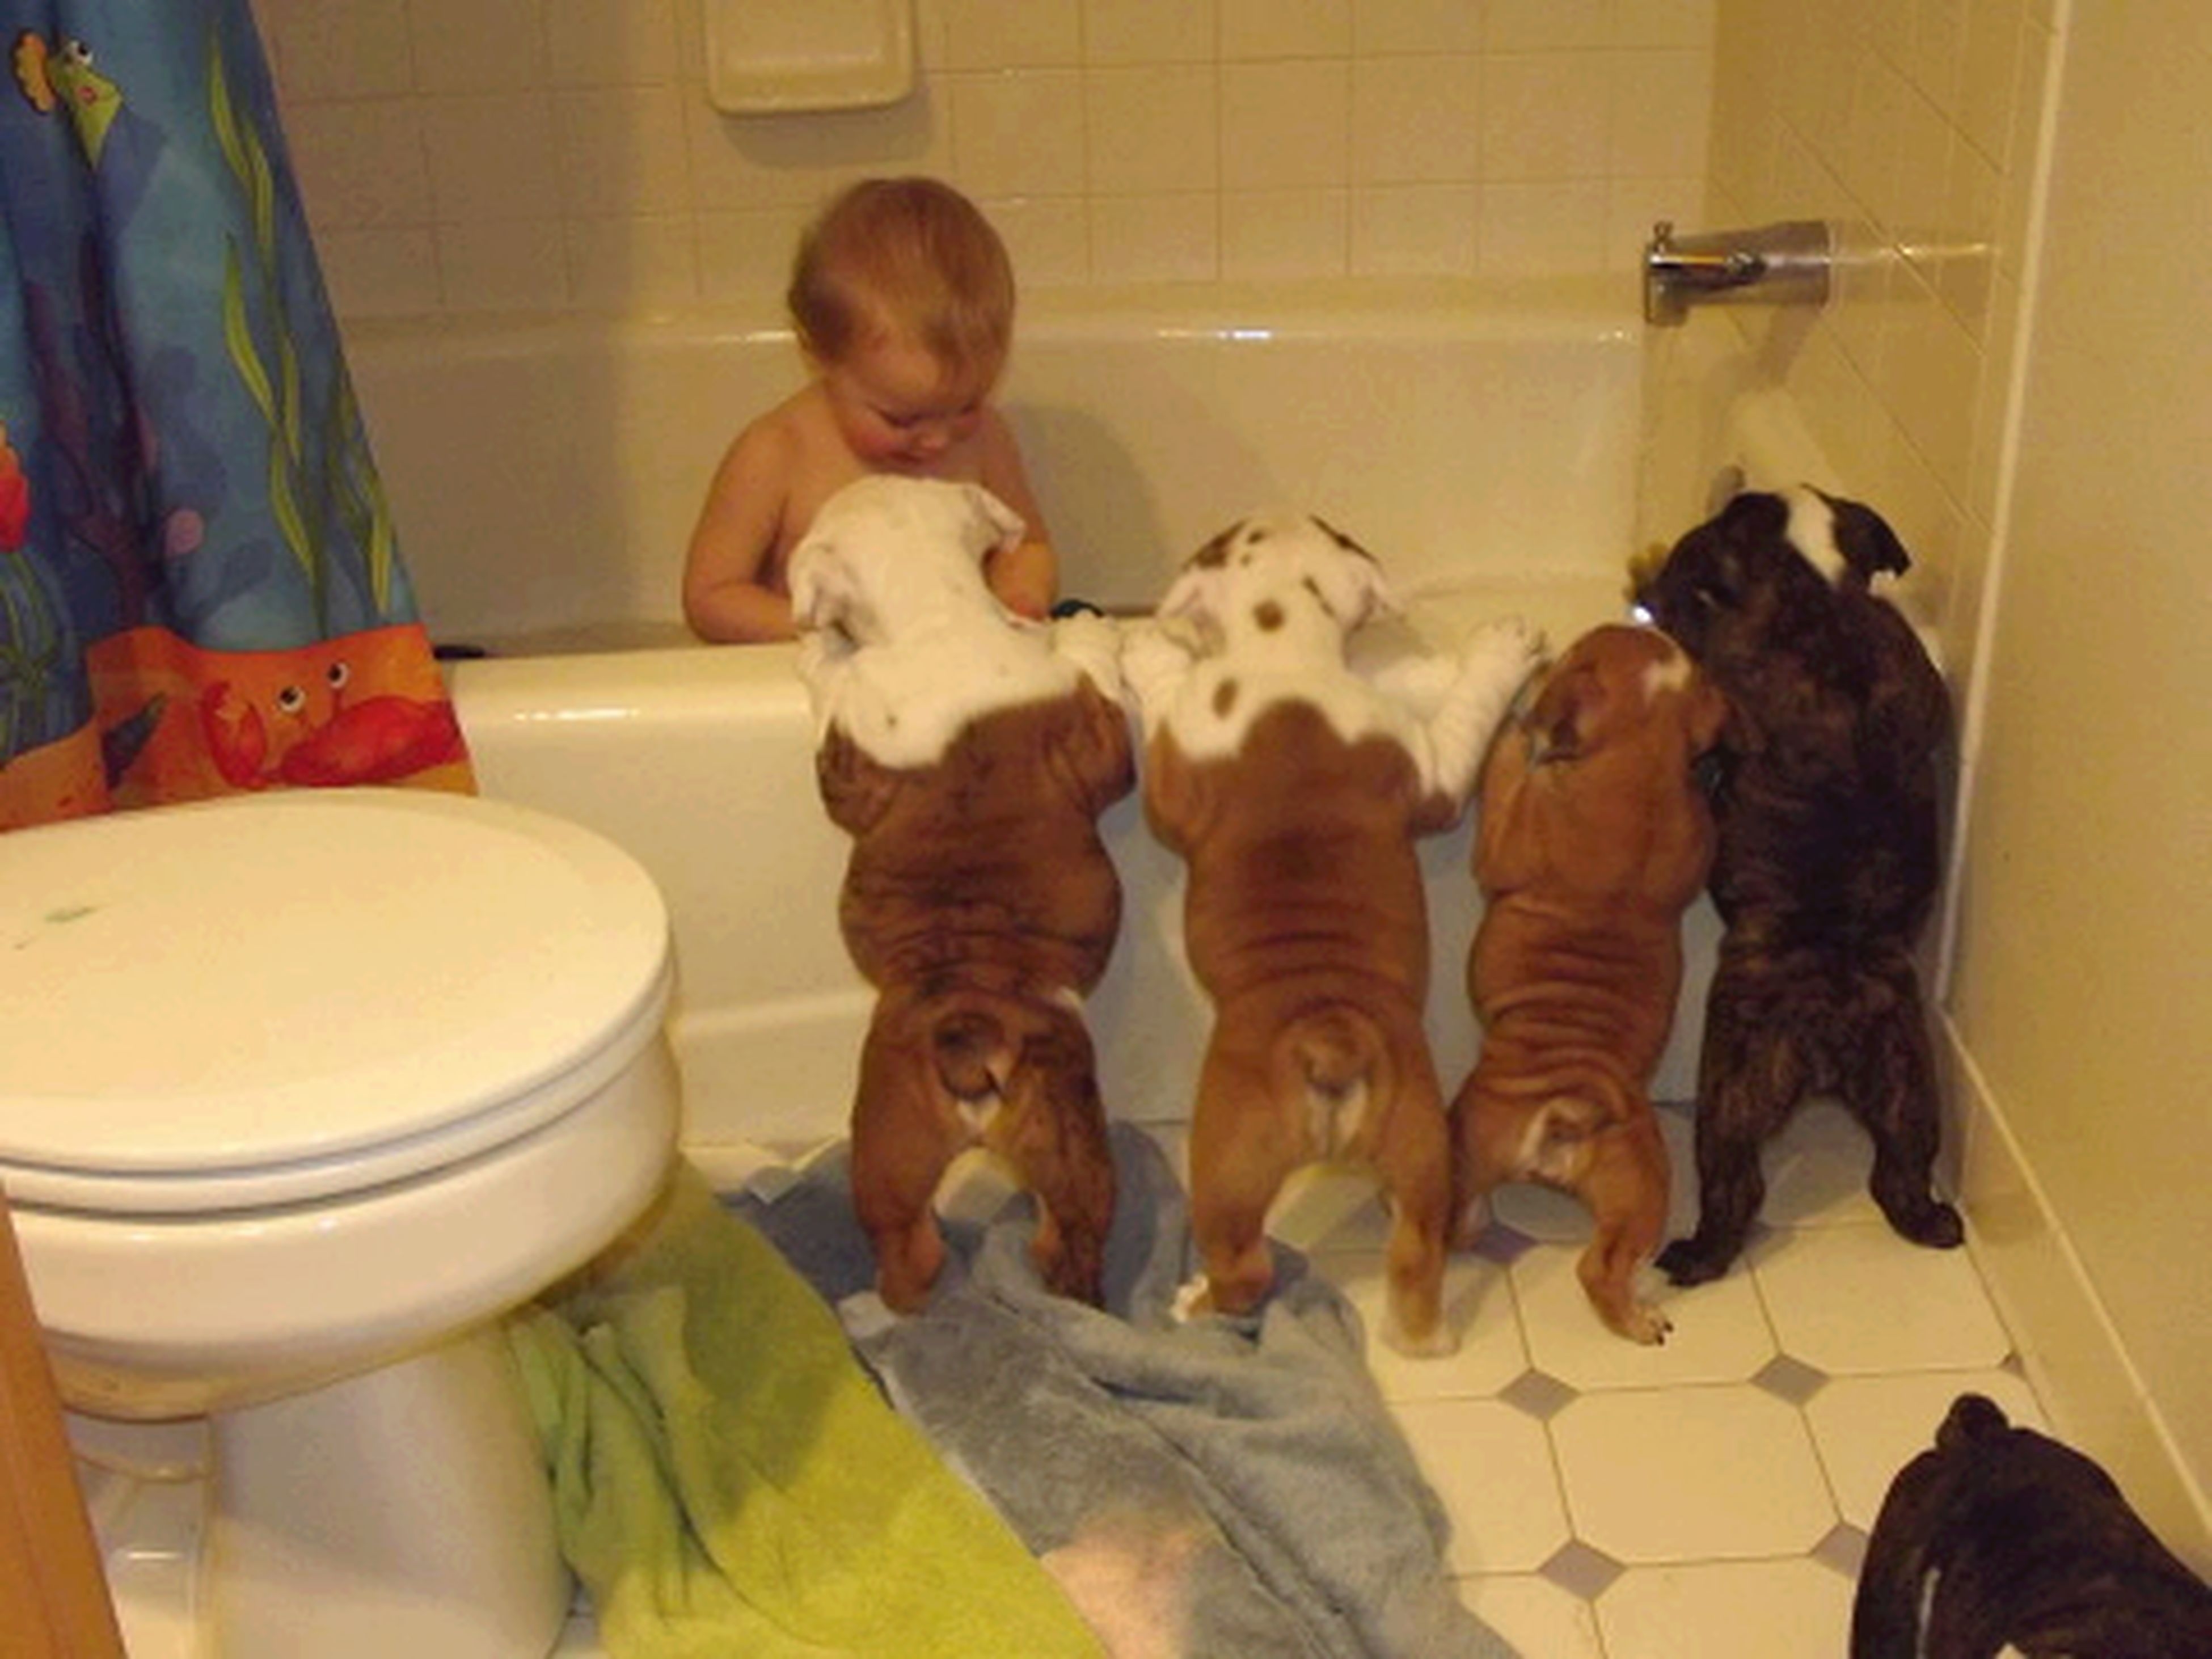 indoors, childhood, sitting, home interior, domestic animals, full length, person, pets, lifestyles, casual clothing, leisure activity, animal themes, mammal, high angle view, elementary age, bathroom, relaxation, standing